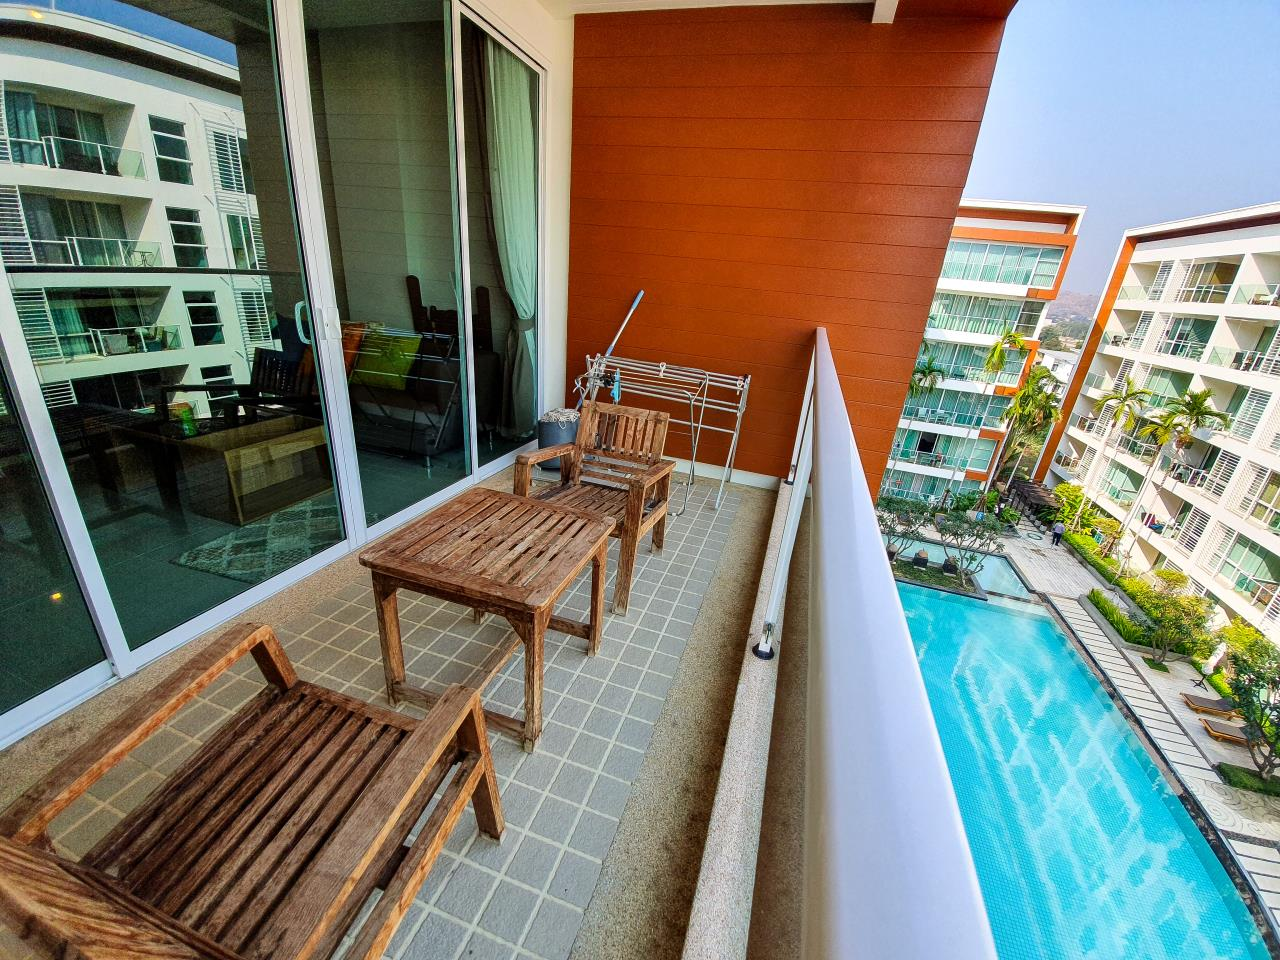 HOME - Real Estate Service Agency's The Breeze Hua Hin / 2 Beds (FOR RENT), เดอะ บรีซ หัวหิน / 2 ห้องนอน (ให้เช่า) T008 25